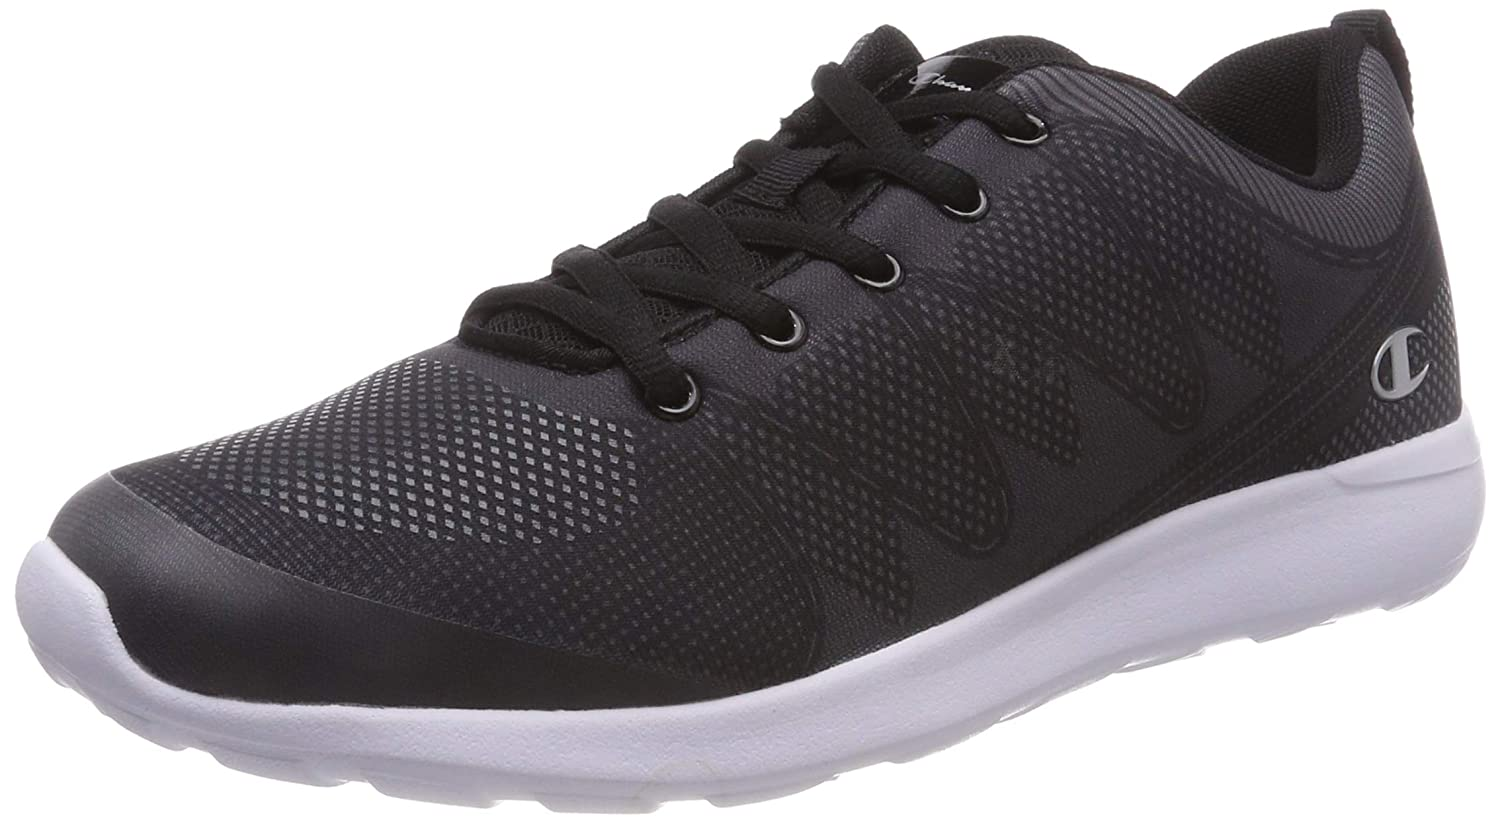 TALLA 42 EU. Champion Low Cut Shoe Pax 3, Zapatillas de Running para Asfalto para Hombre